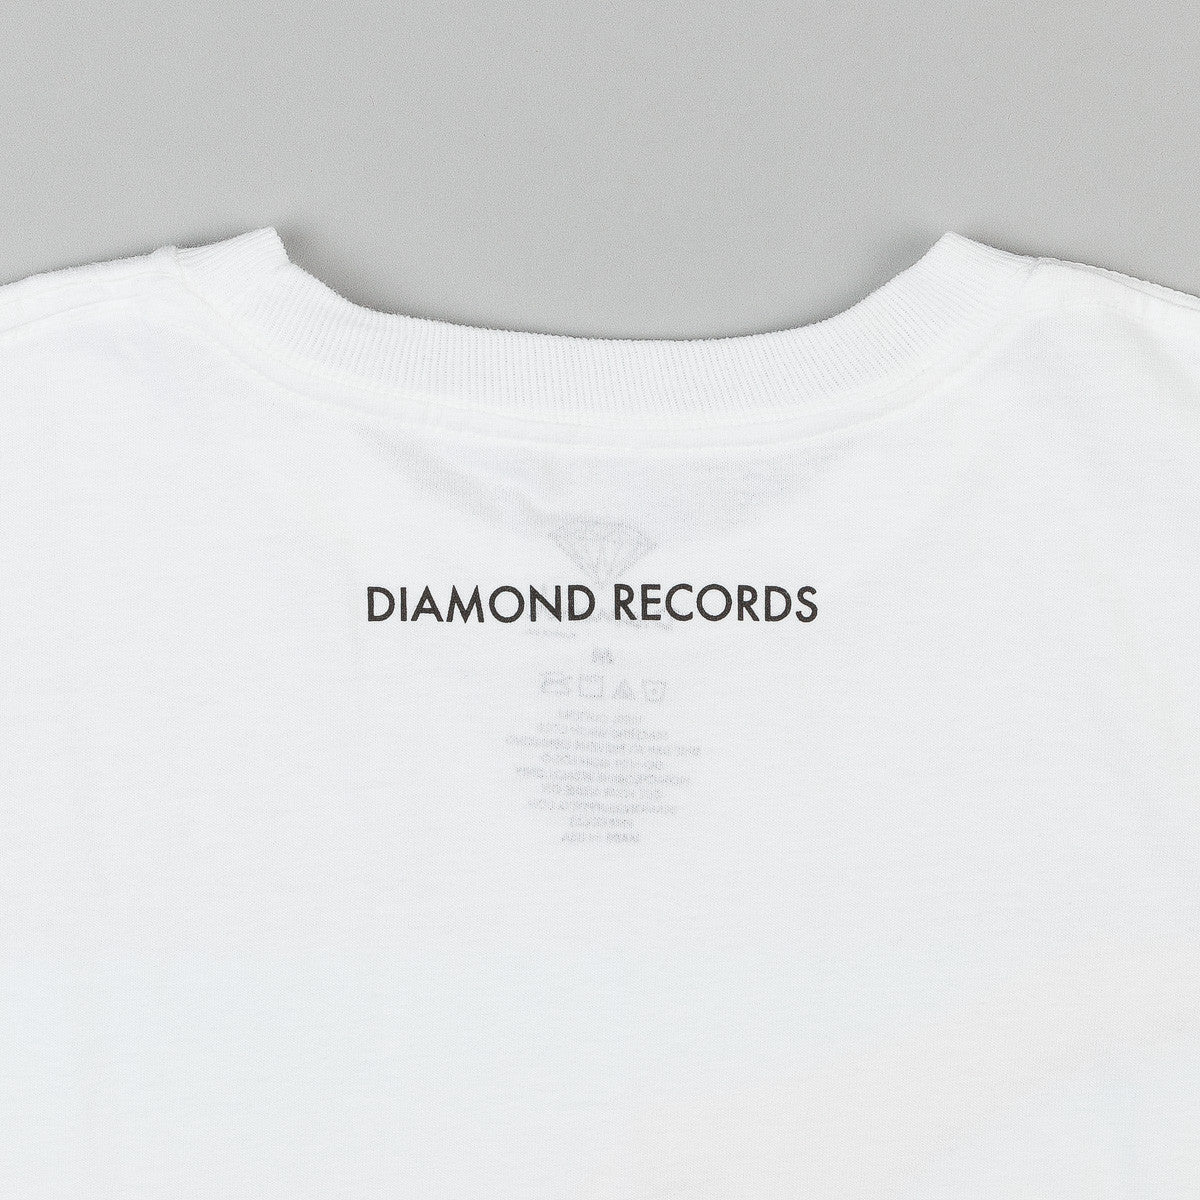 Diamond Records T-Shirt - White